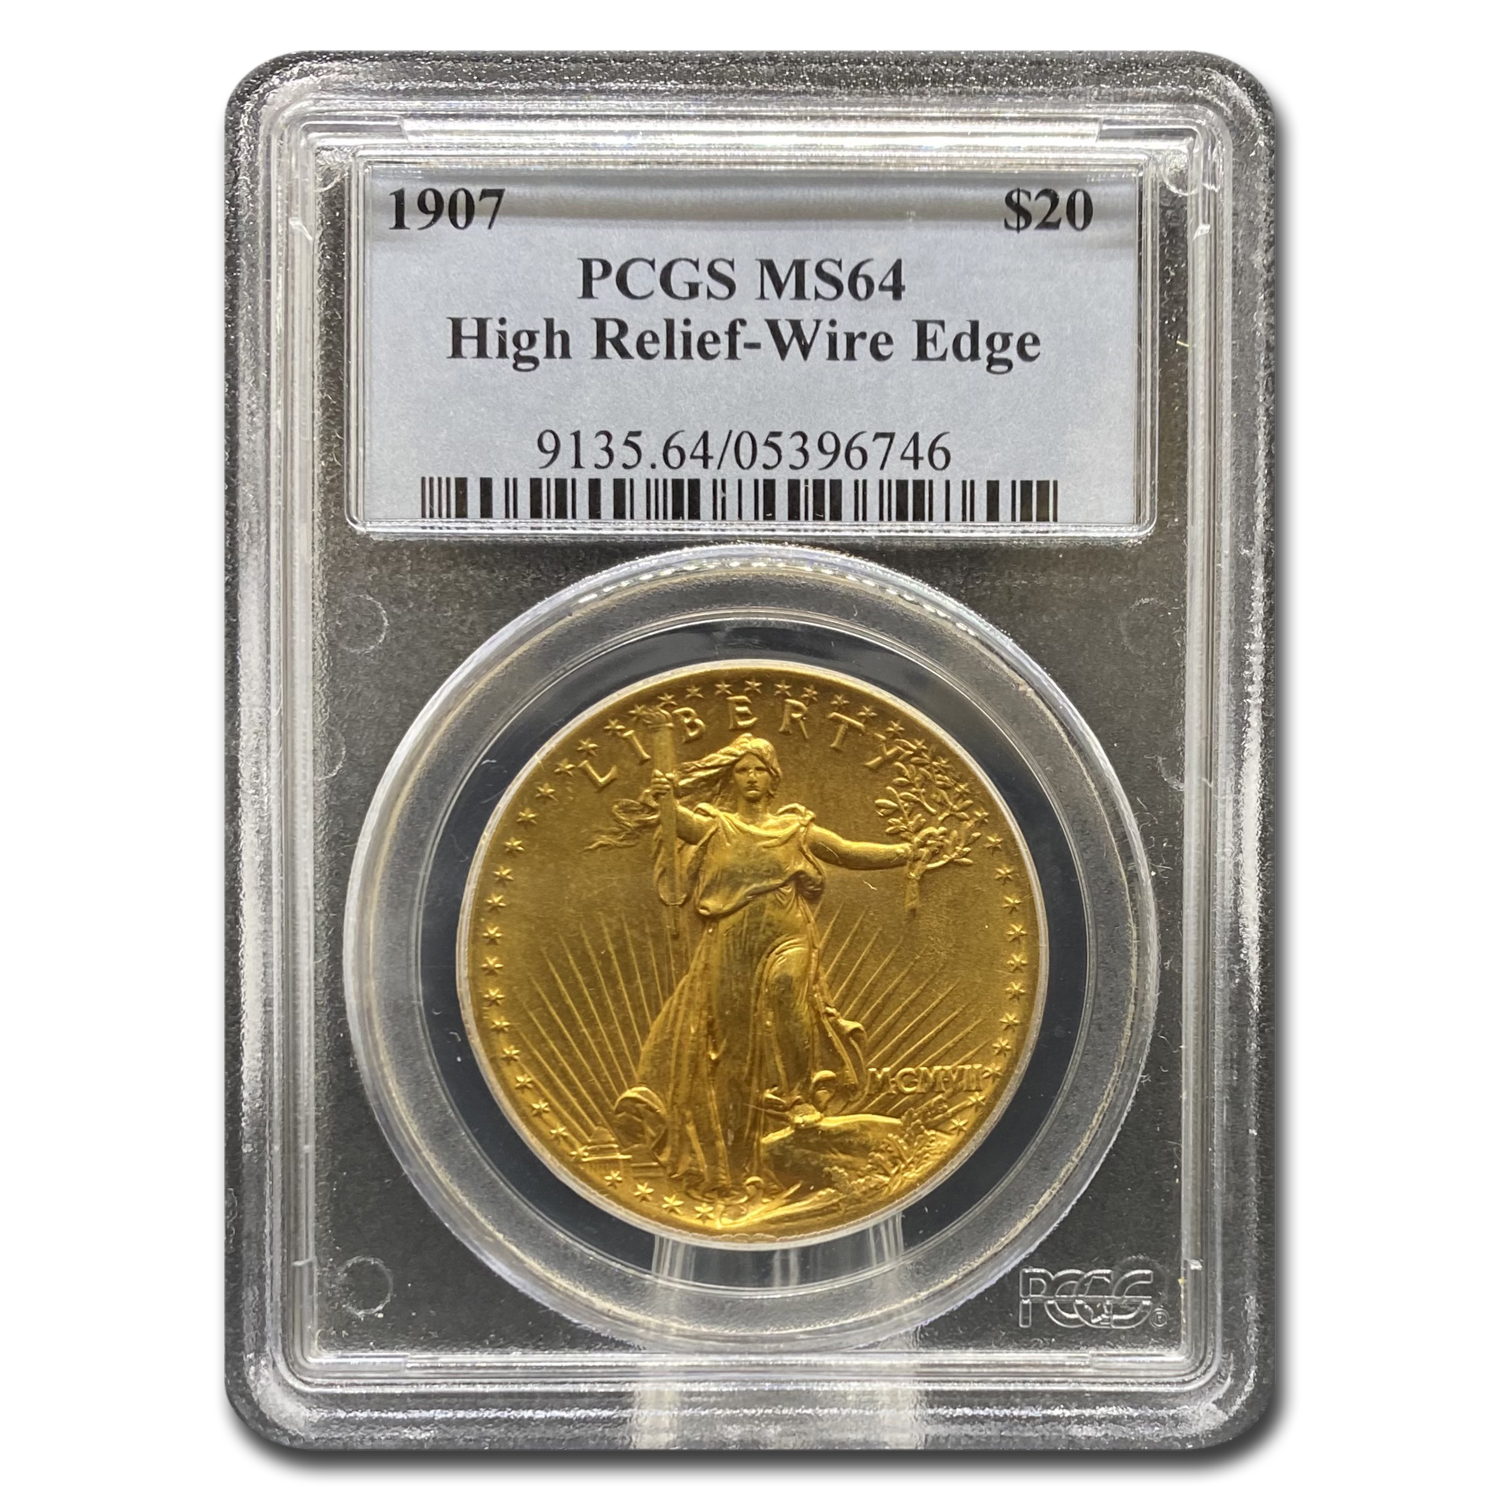 1907 $20 St. Gaudens Gold High Relief Wire Edge MS-64 PCGS